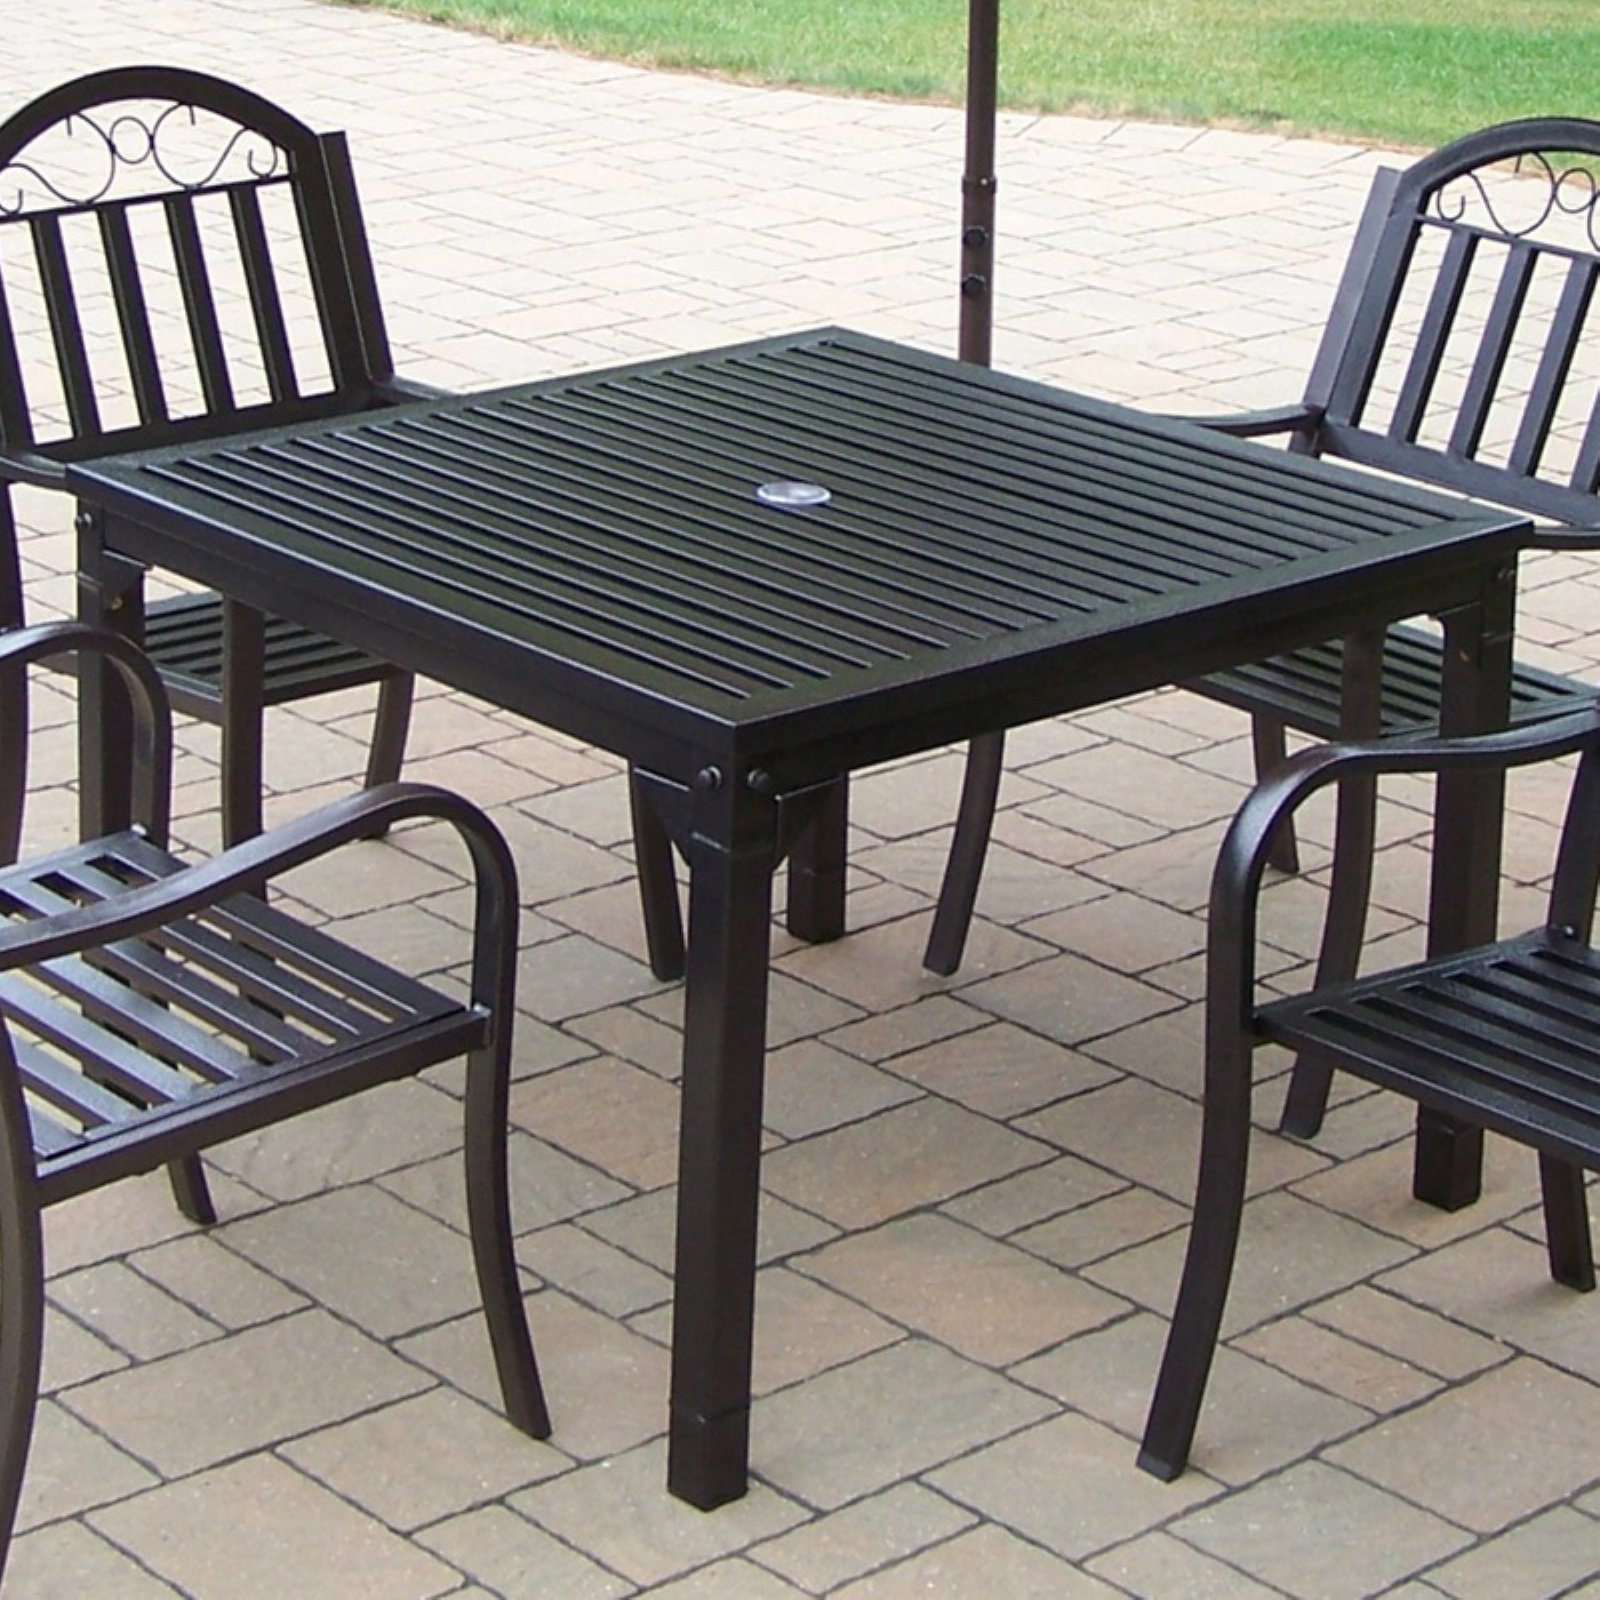 Oakland Living Rochester 40 x 40 in. Patio Dining Table